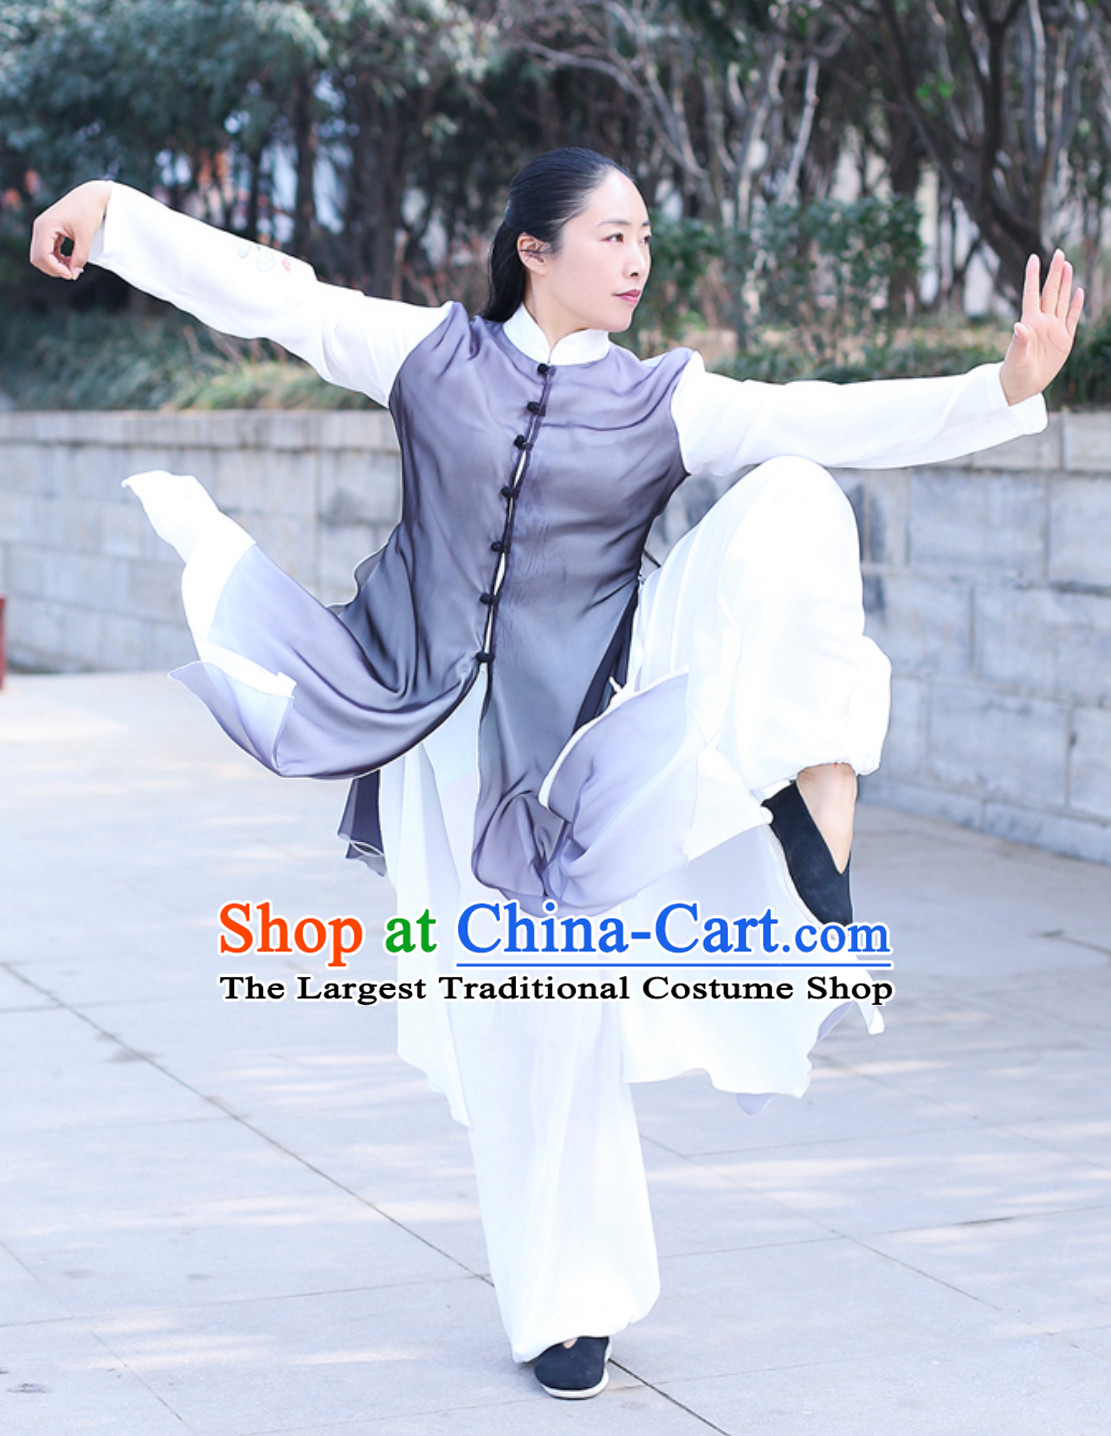 Top Chinese Traditional Competition Championship Tai Chi Taiji Kung Fu Wing Chun Shaolin Master Suits Kungfu Clothing Complete Set